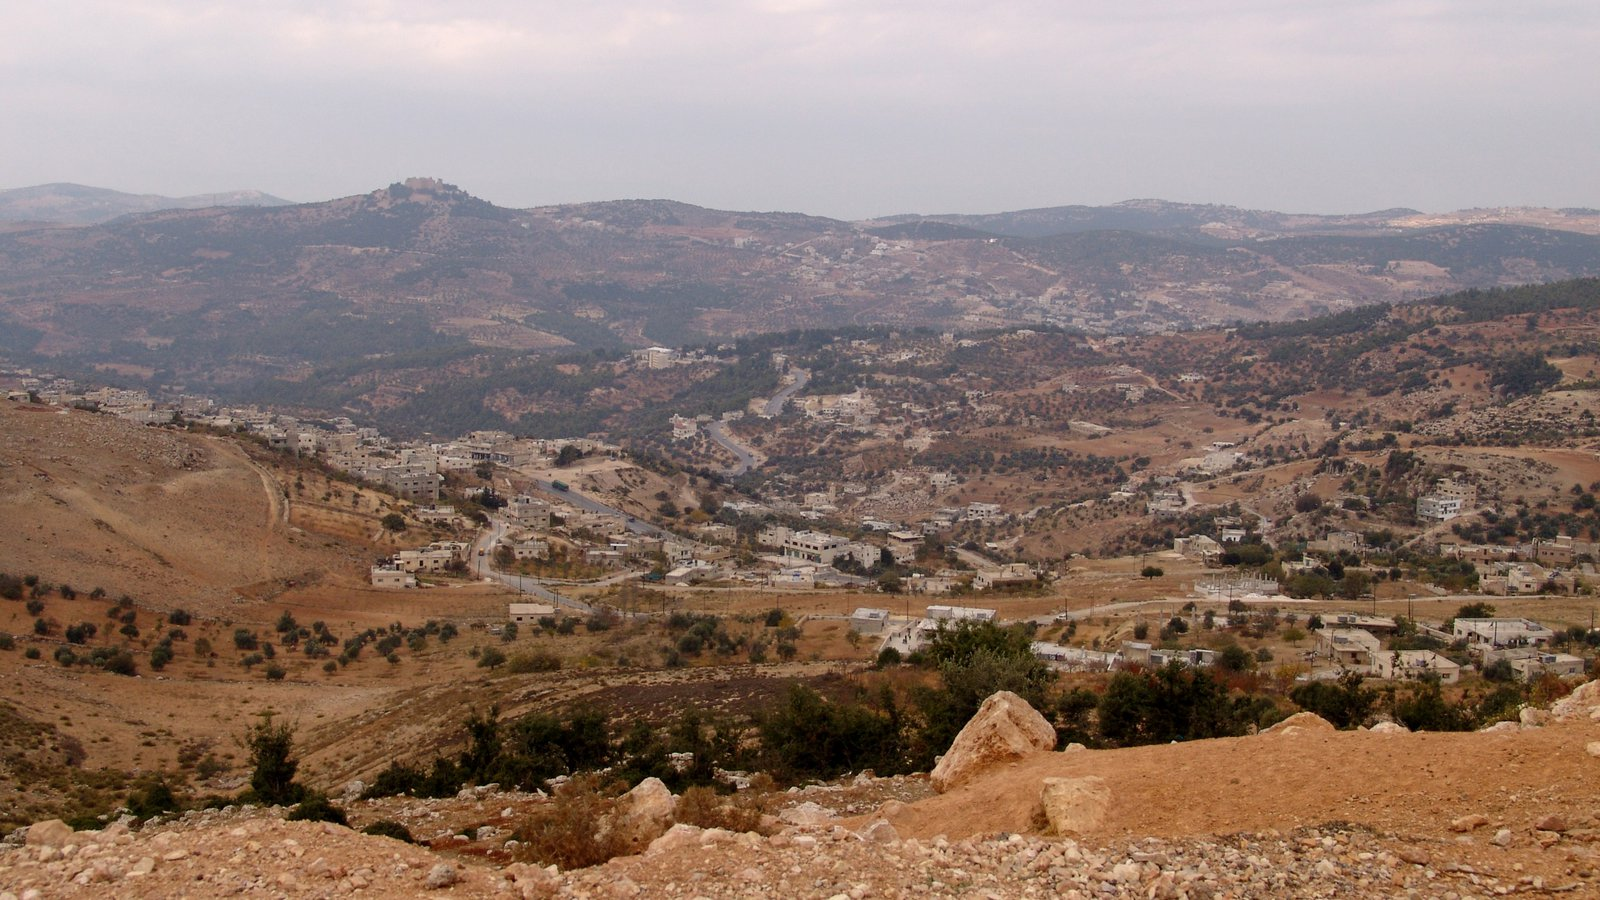 Ajloun showing landscape views and skyline